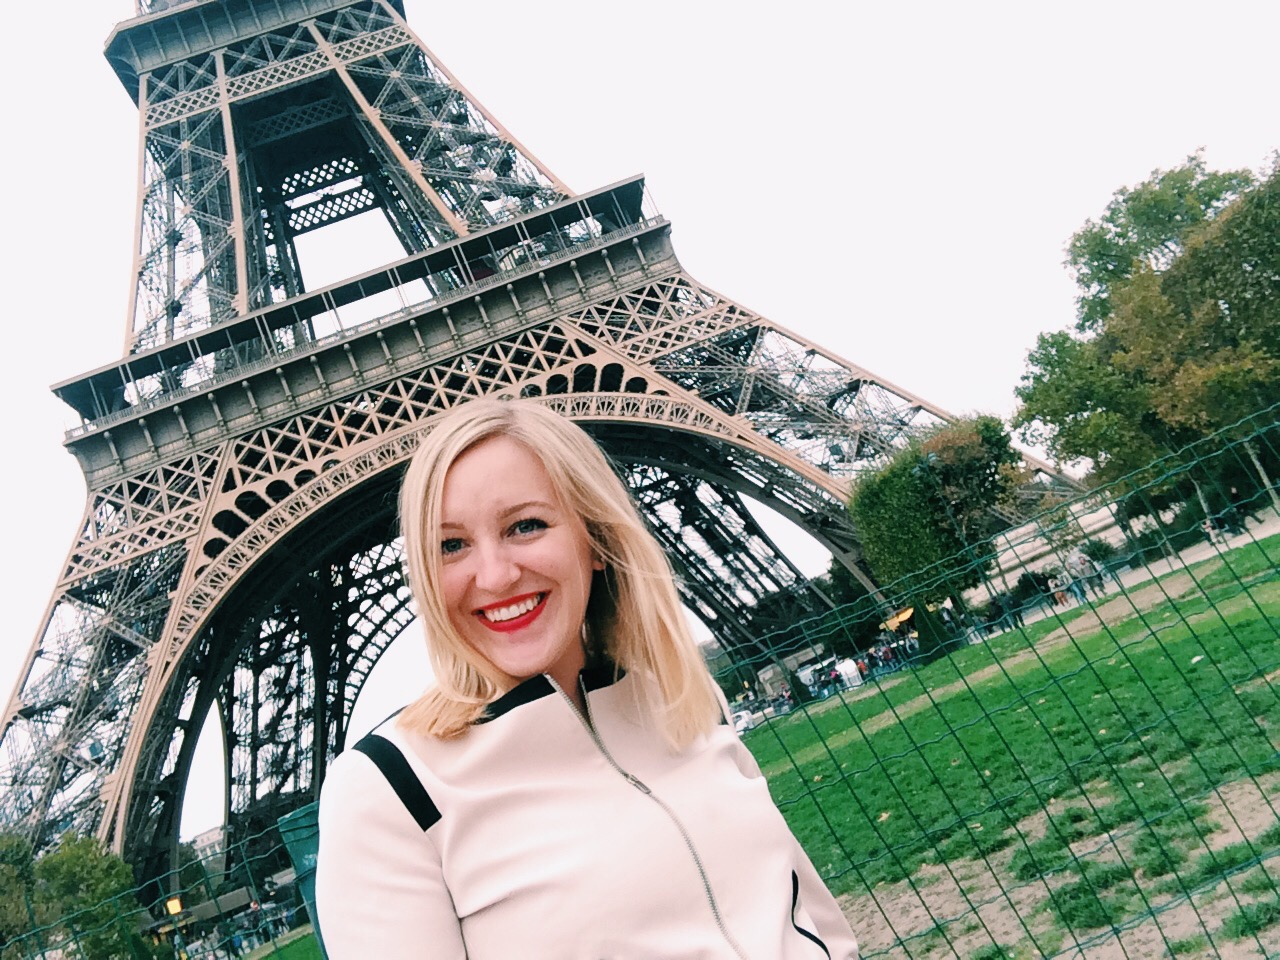 Happiness at the Eiffel Tower